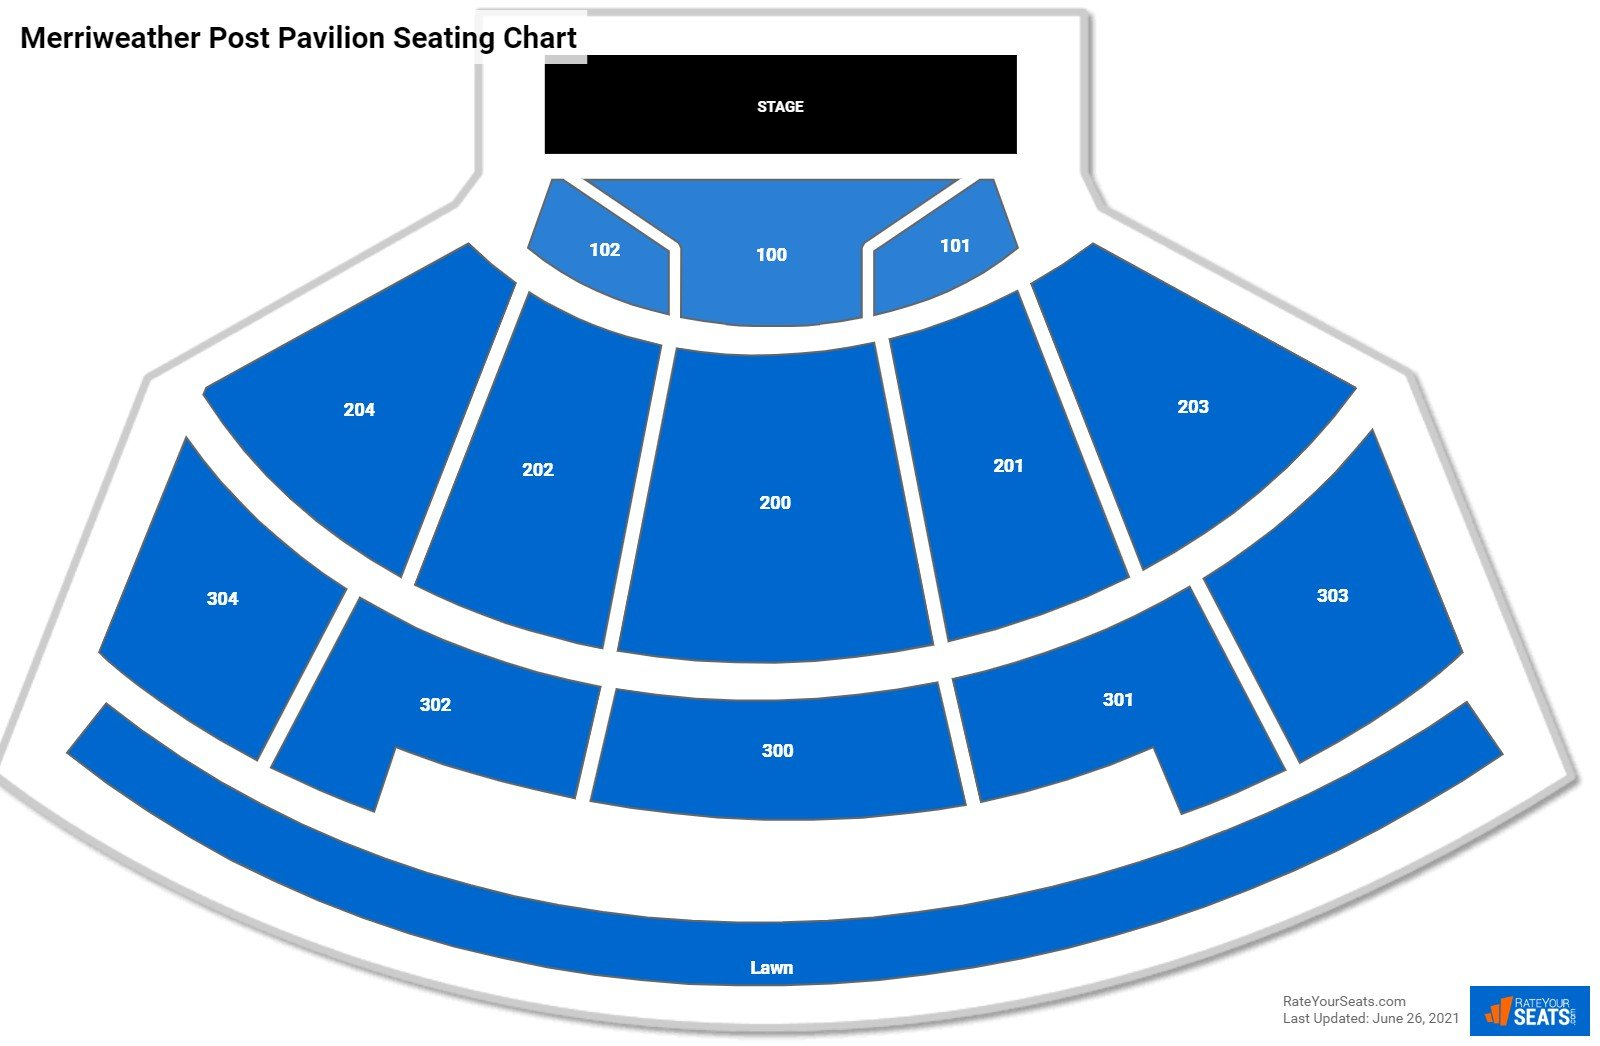 Merriweather Post Pavilion Seating Chart